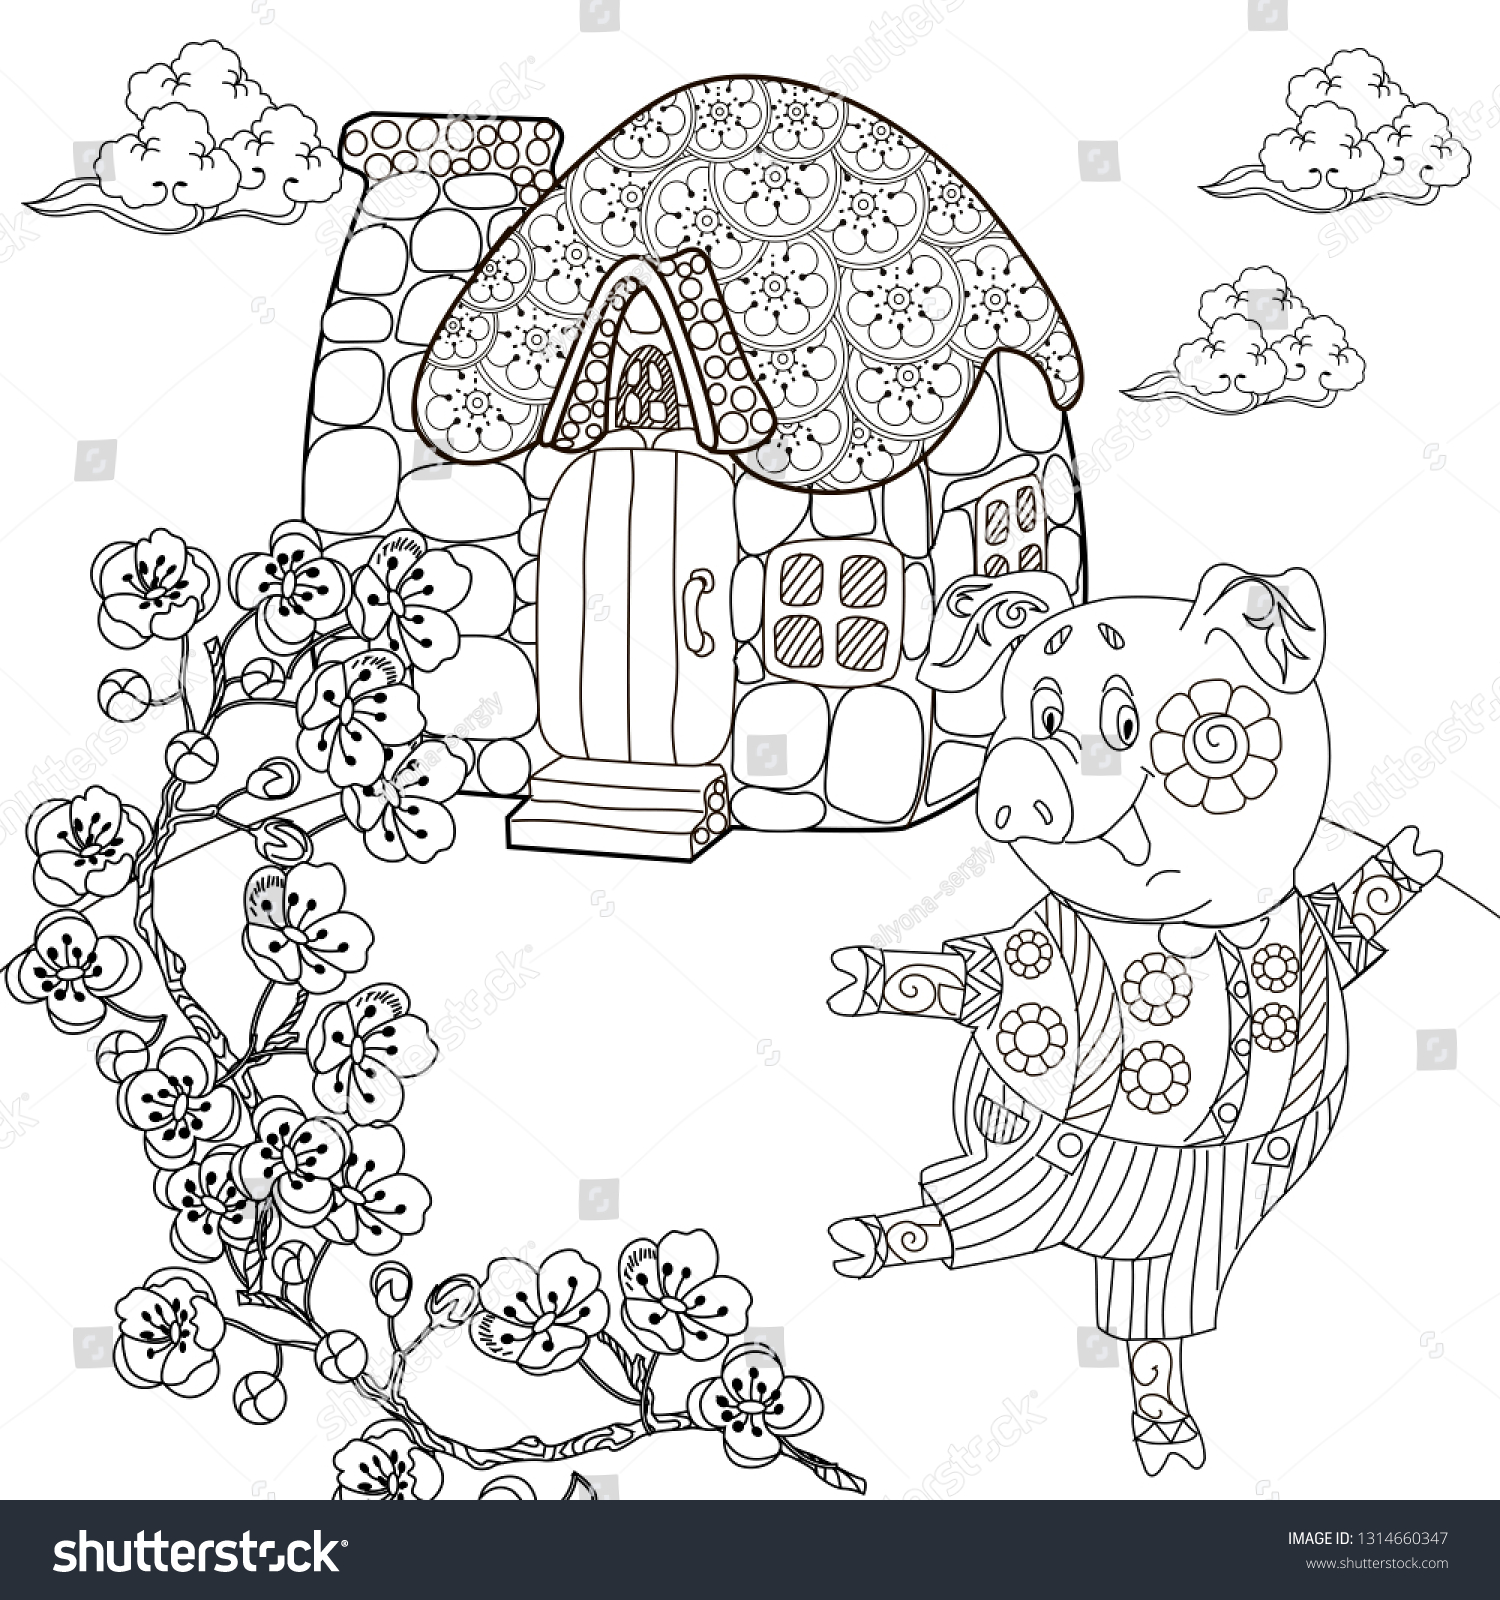 Pictures: pattern colourings | Coloring Pages Coloring Book Adults ... | 1600x1500